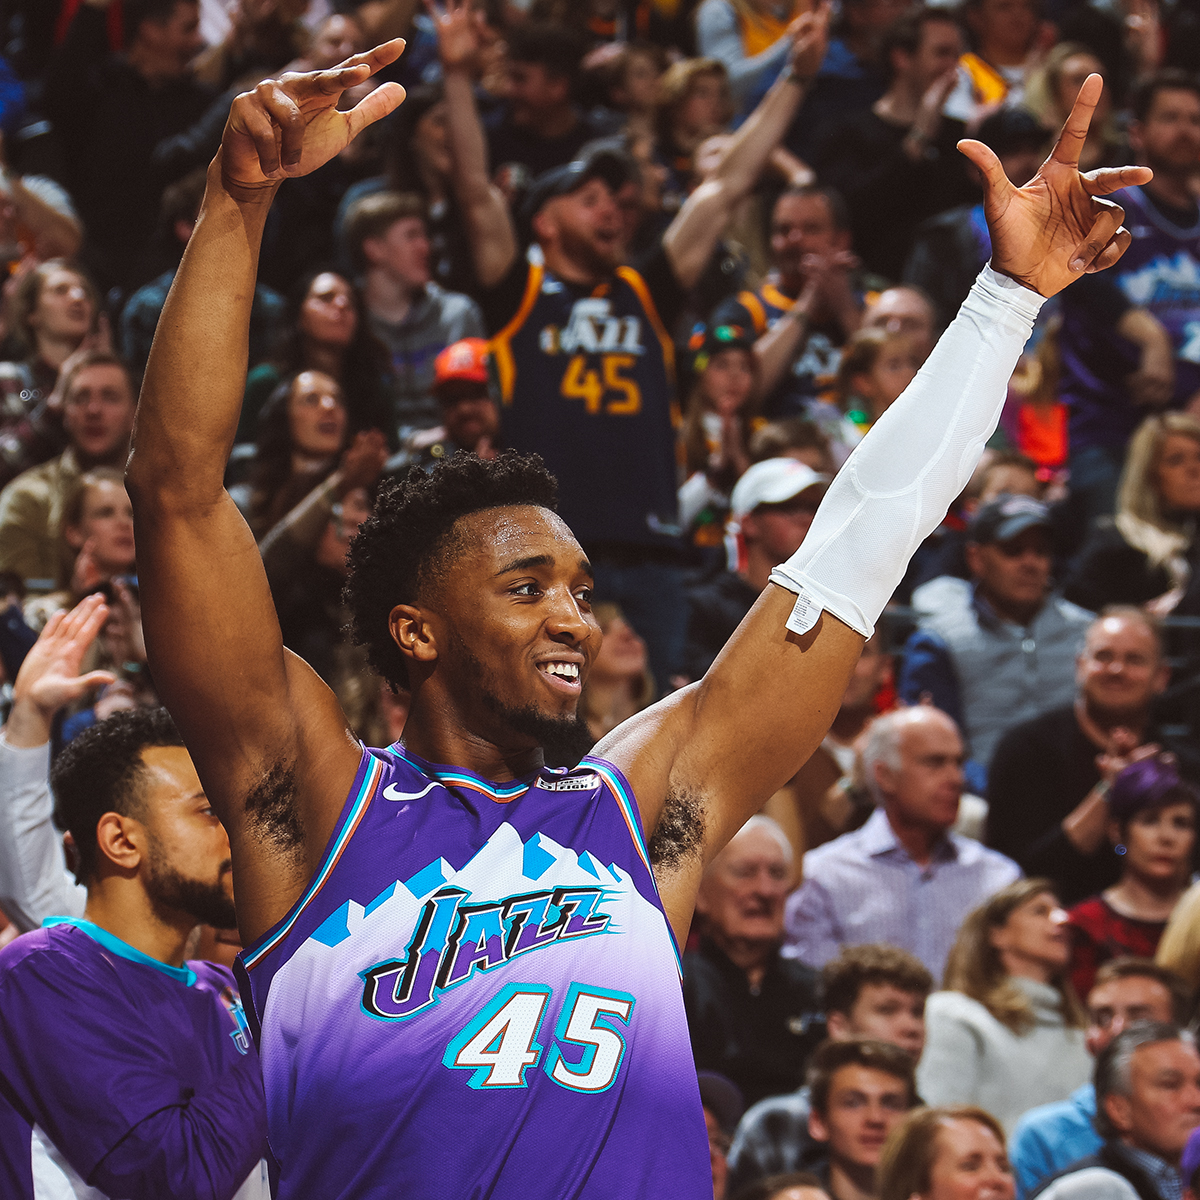 The @utahjazz are on the longest streak in the League & no one is talking about it. Why?